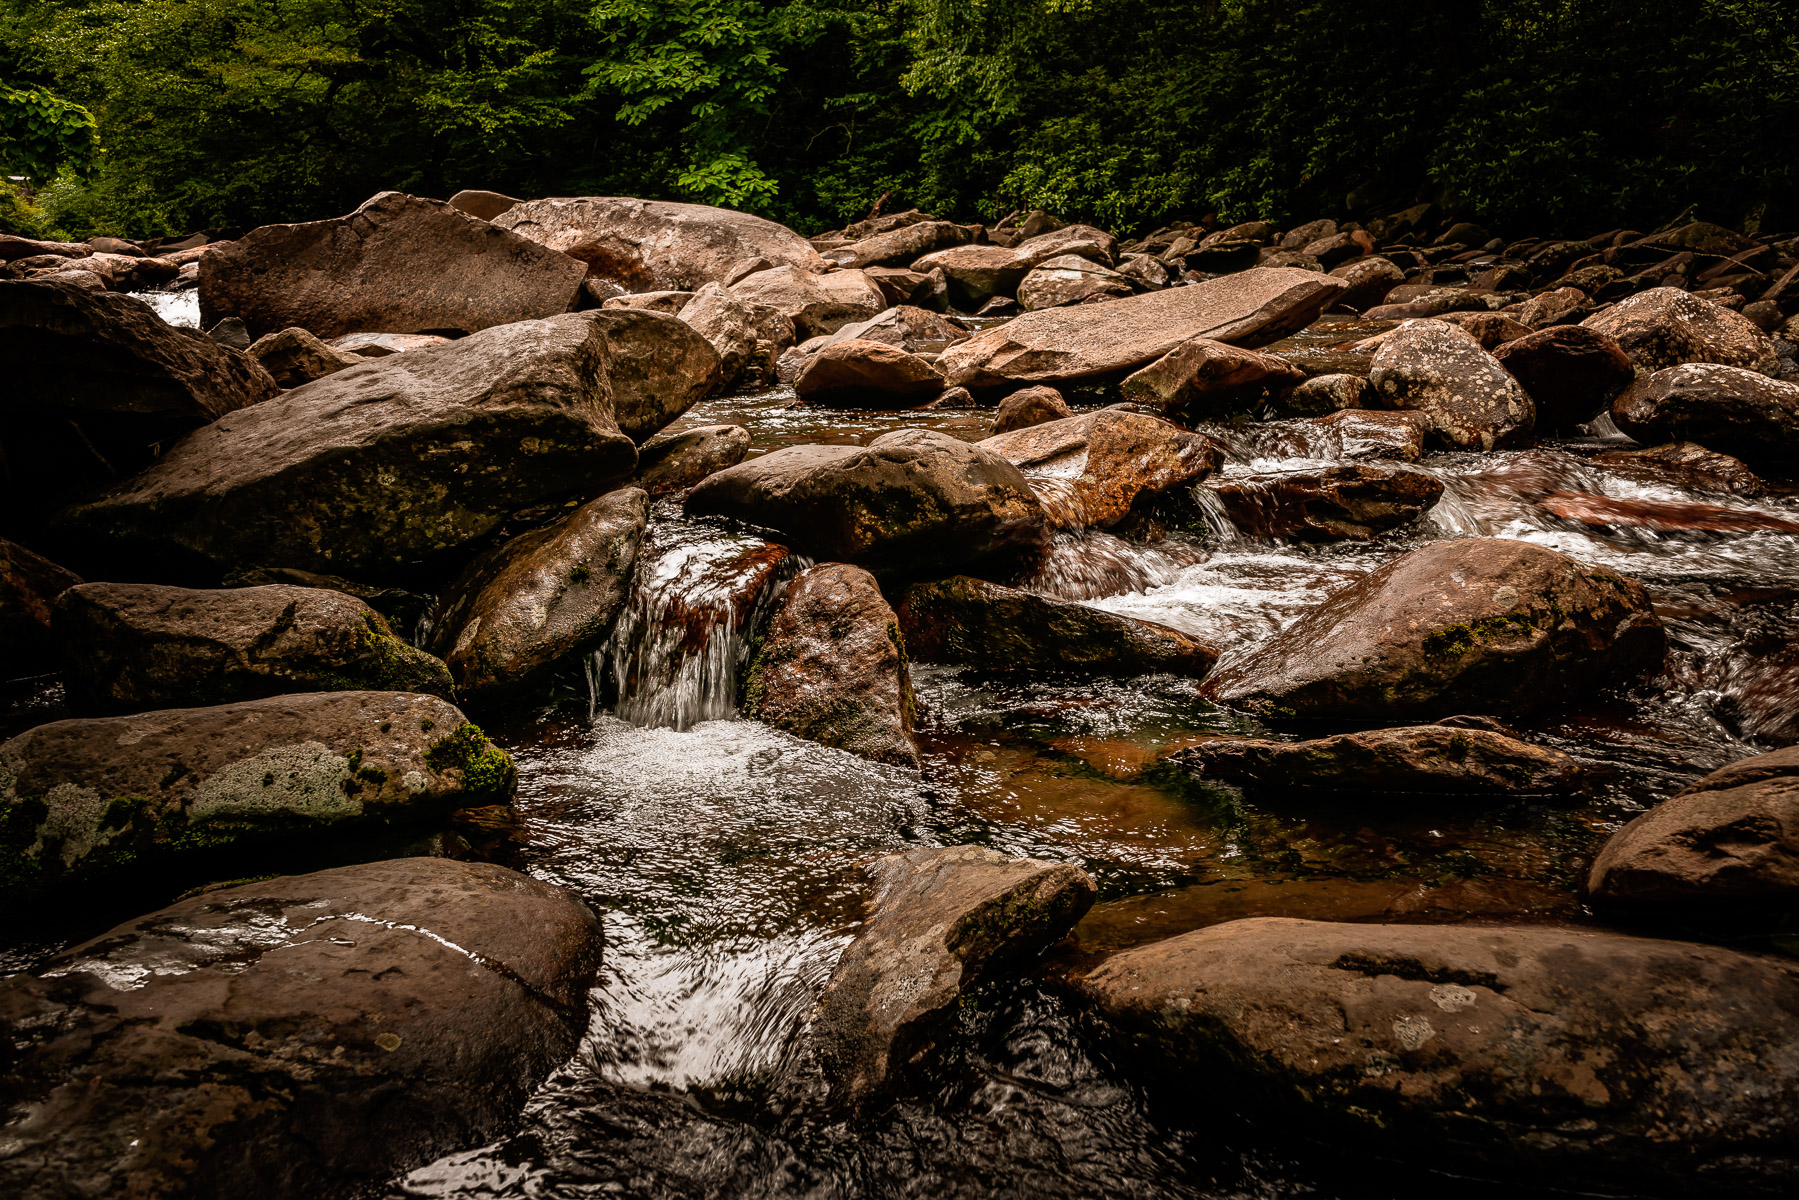 The West Prong of the Little Pigeon River flows over rocks in Tennessee's Great Smoky Mountains National Park.